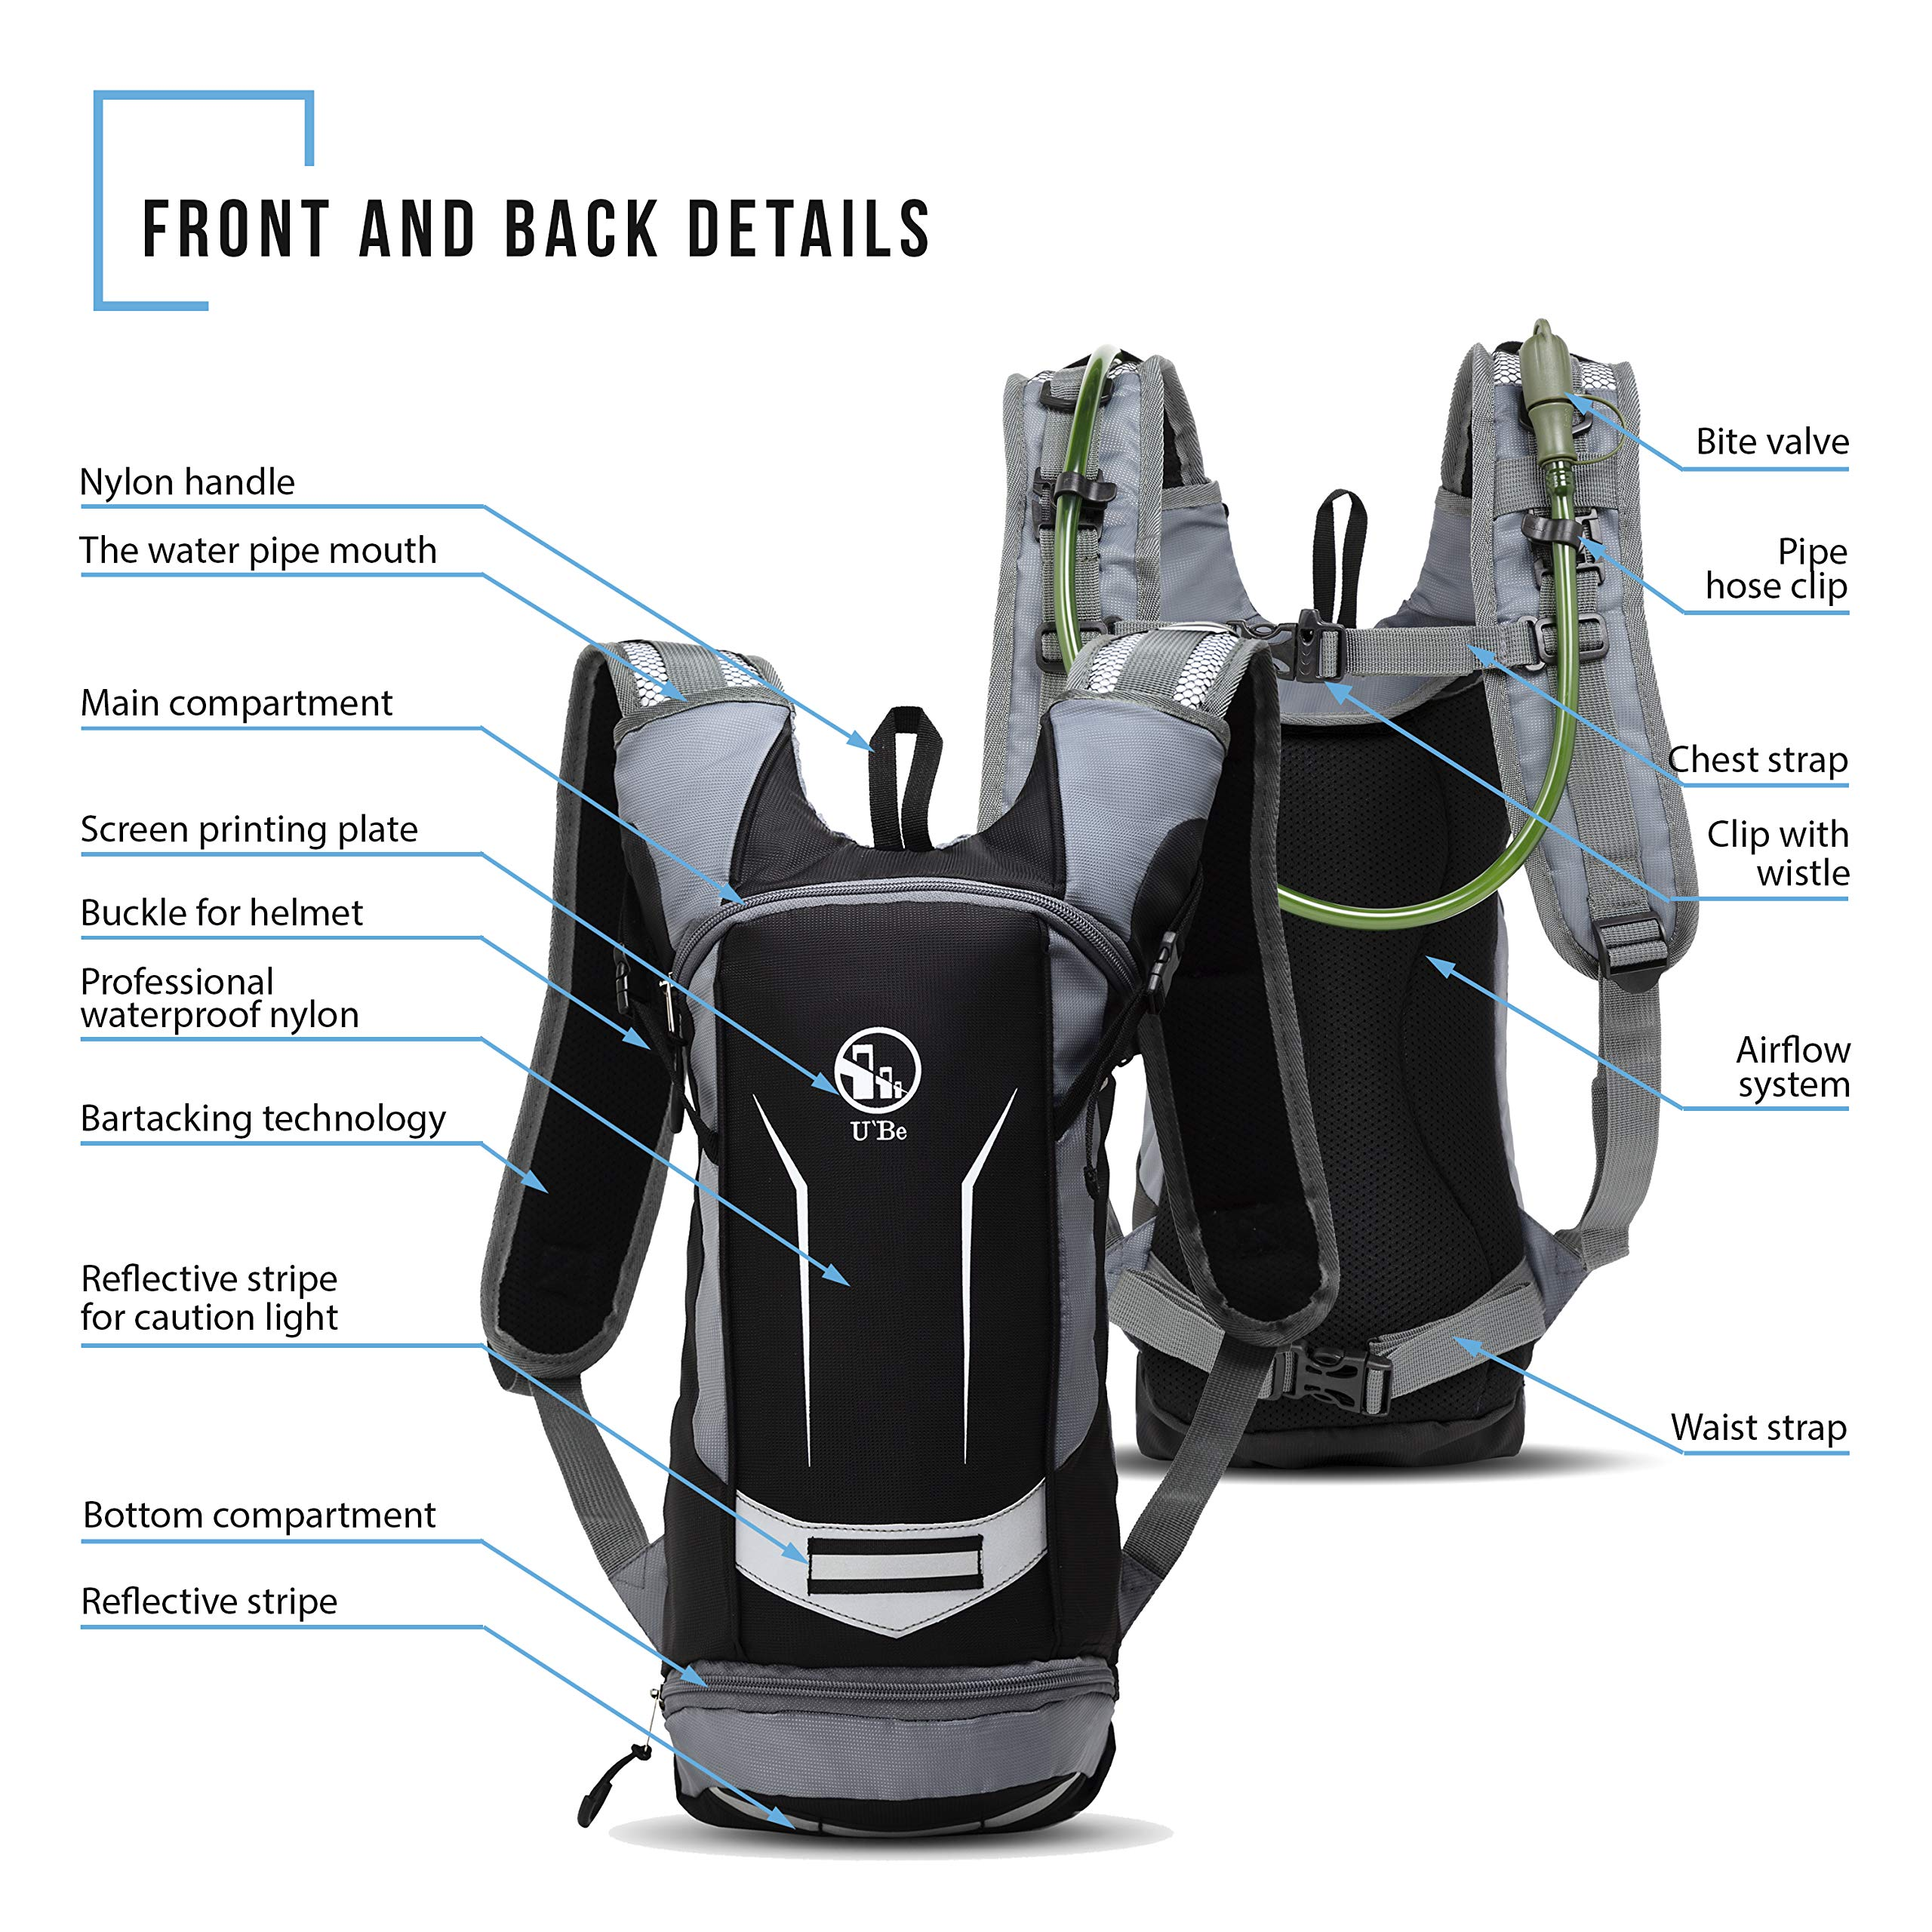 U`Be Hydration Pack - Hydration Backpack - Camel Pack Water Backpack with Insulated 2l Bladder for Women Men Kids Backpacking - Small Lightweight Water Reservoir for Running Hiking Cycling by U`Be (Image #8)